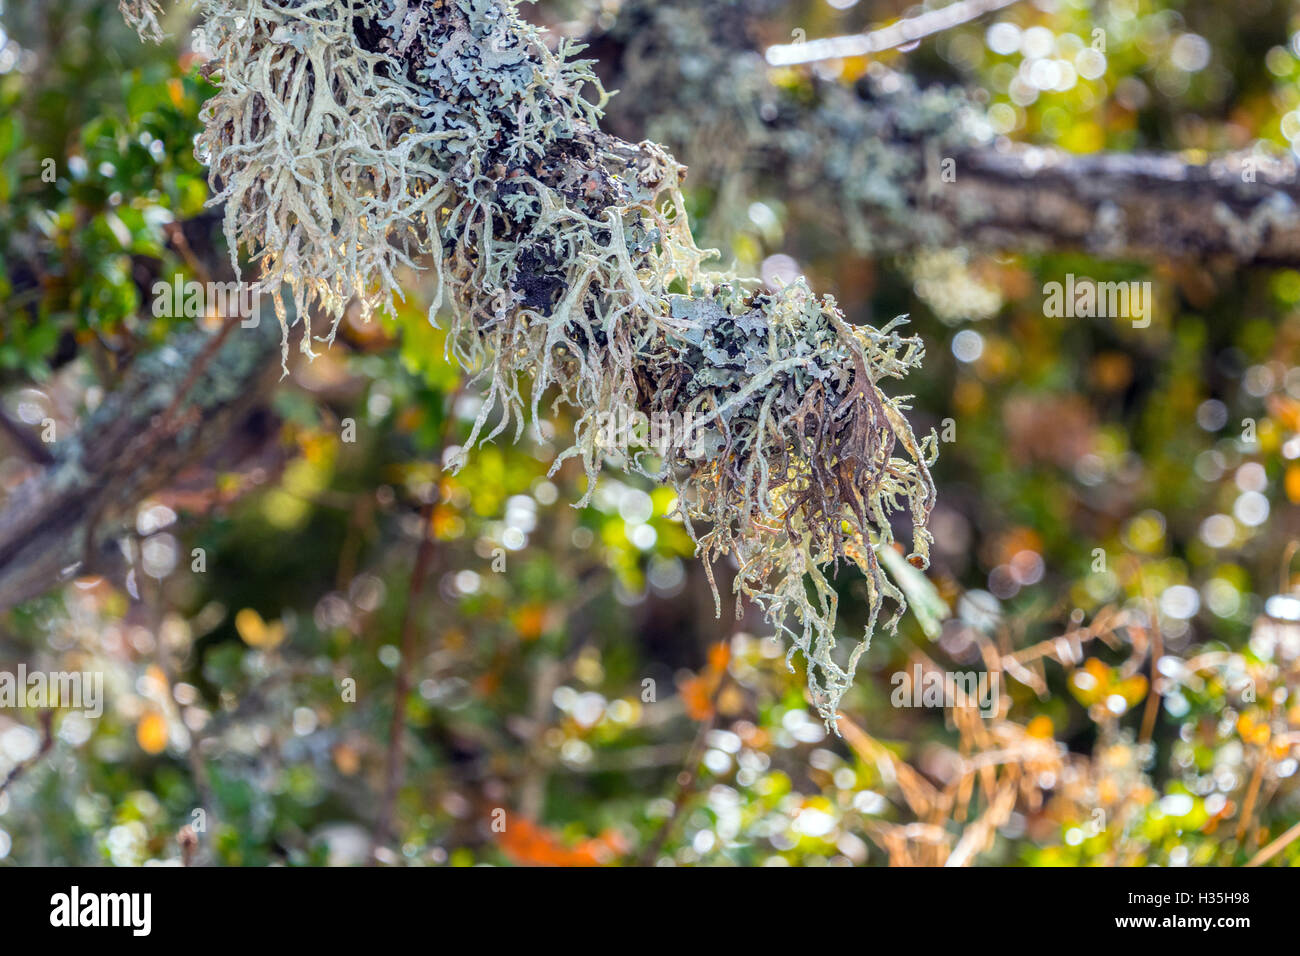 Lichen gris gris luxuriante growing on tree branch, France Photo Stock